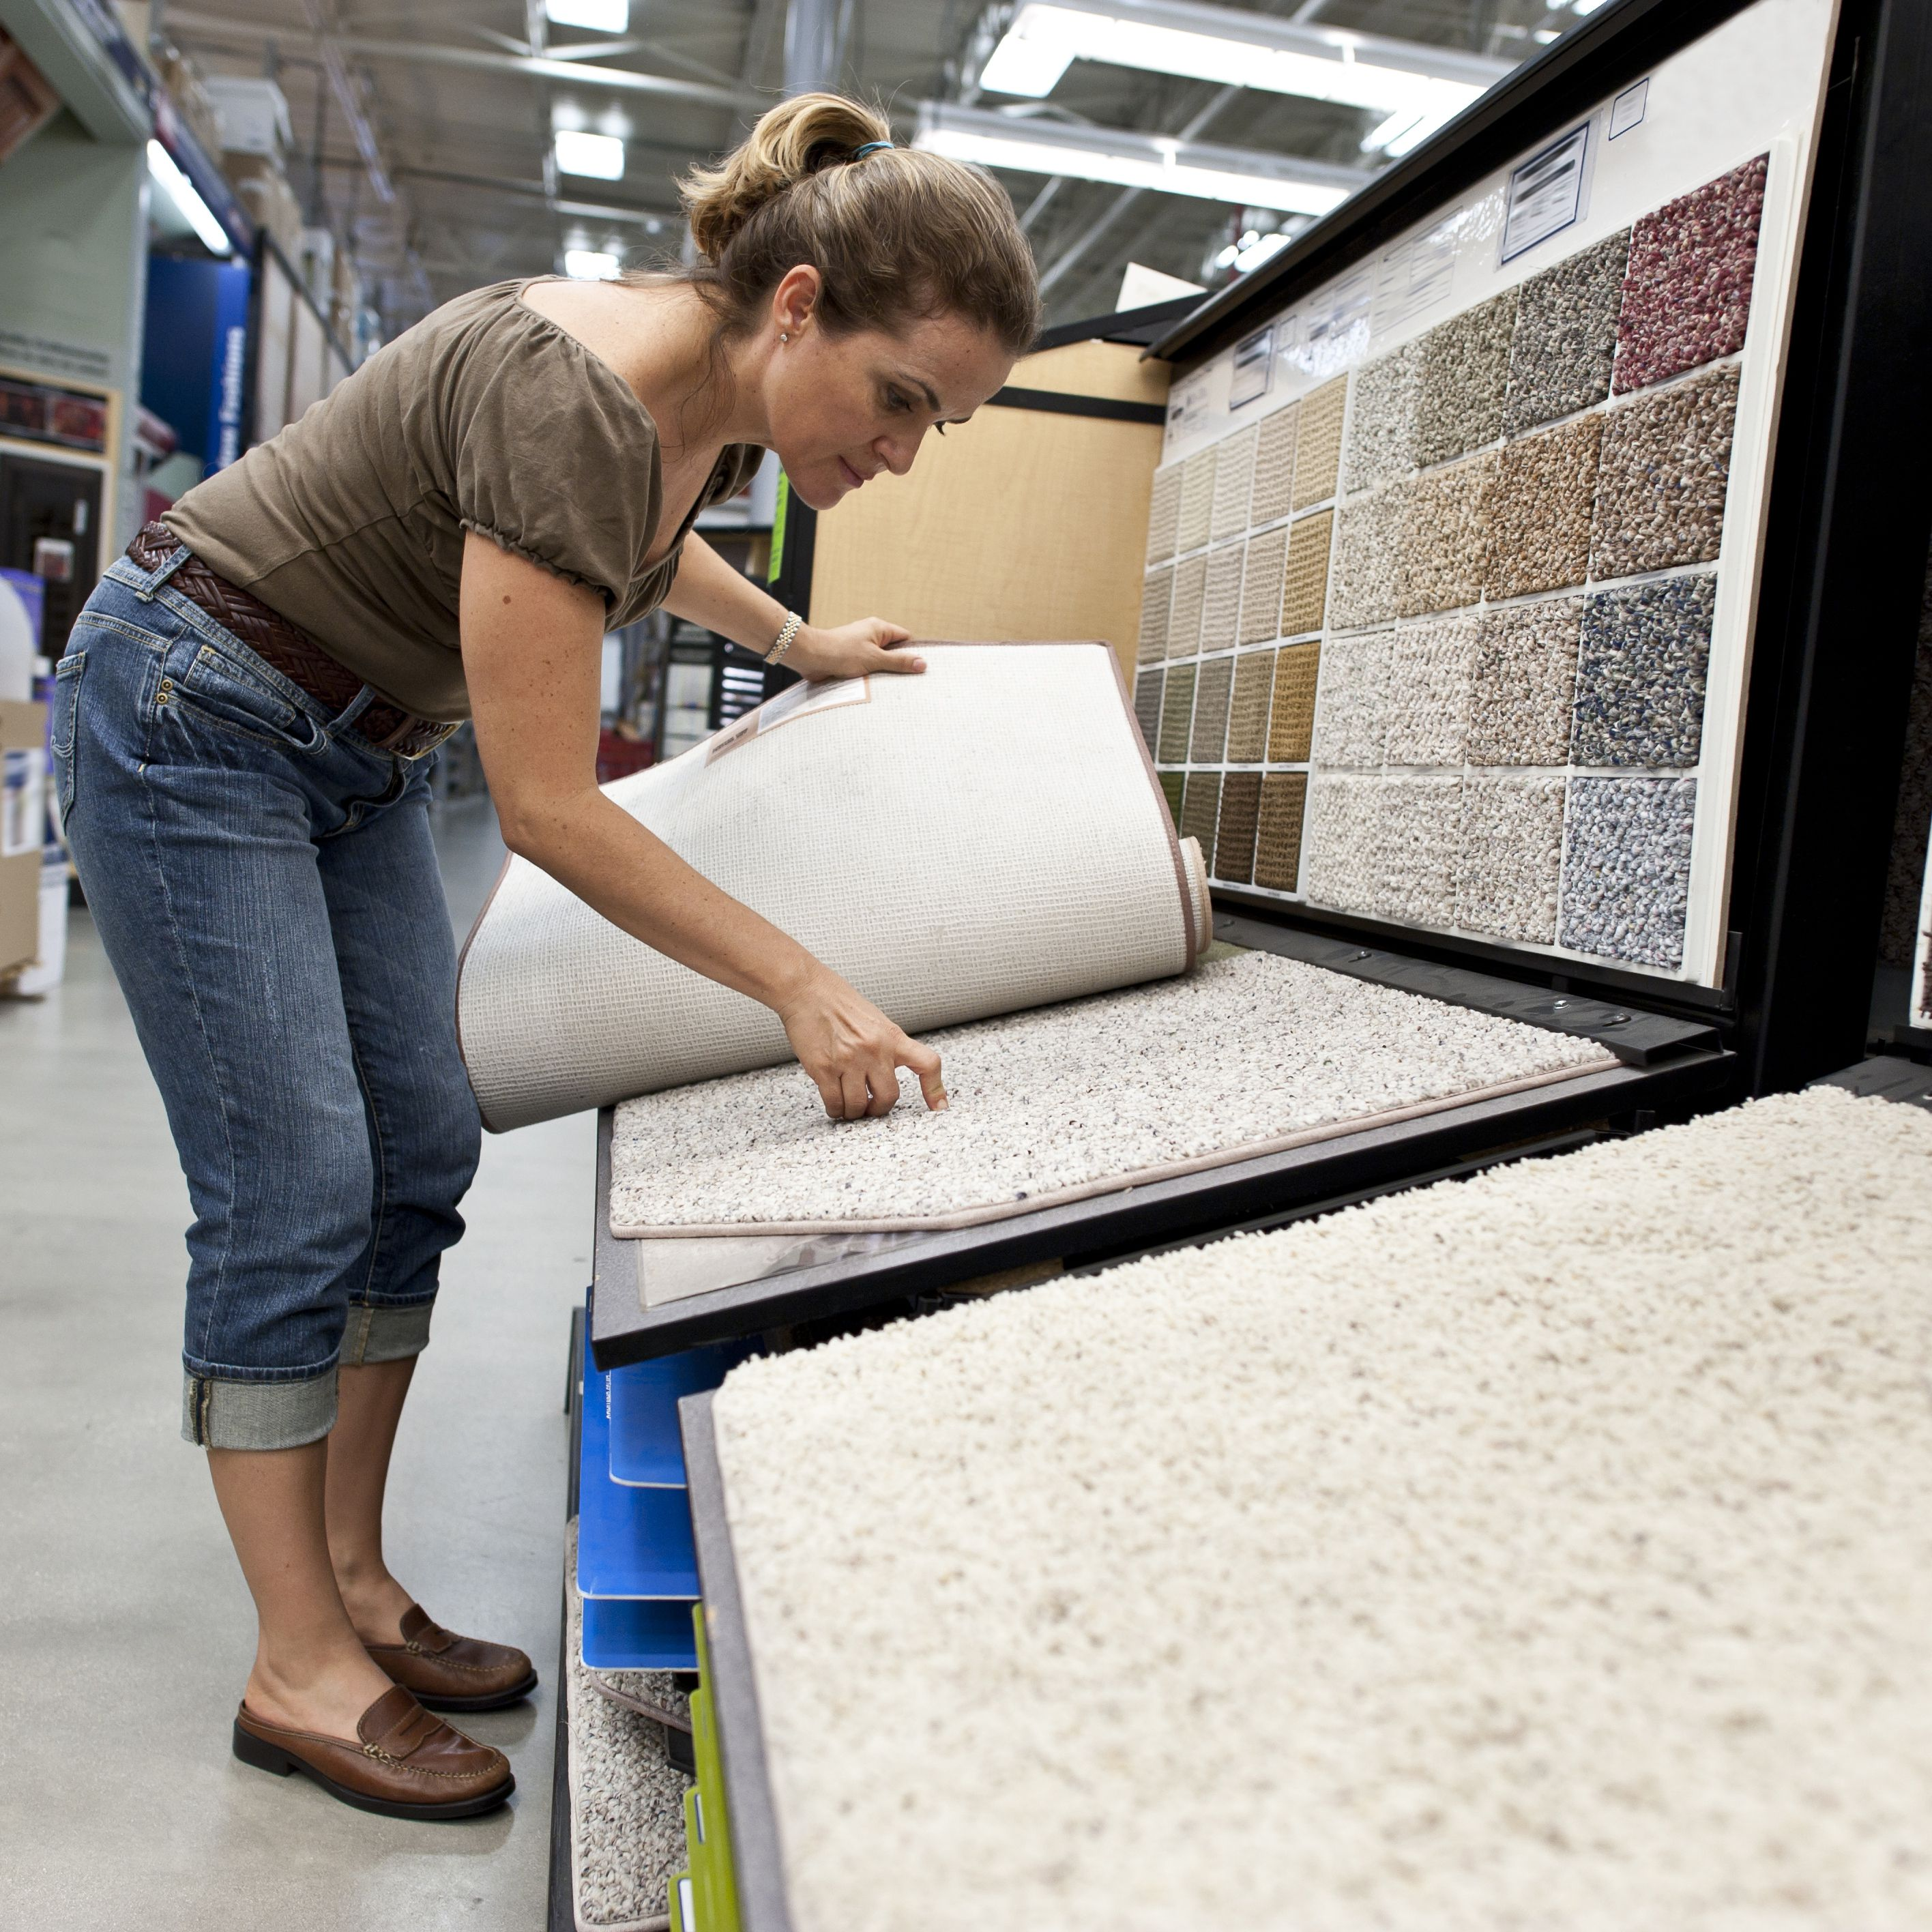 Where Is the Best Place to Buy Carpet?